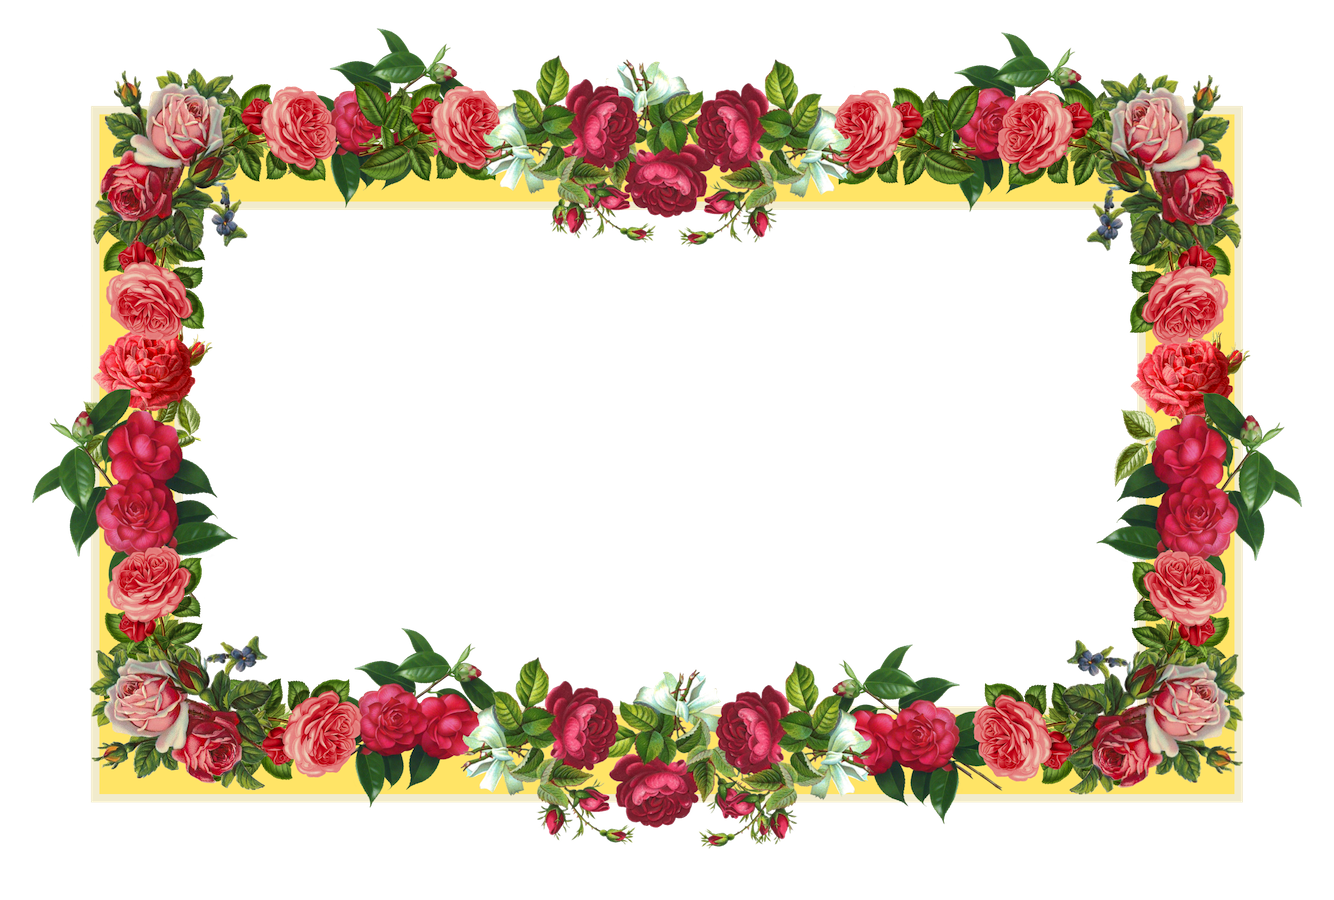 Rose Flower Borders Png Clipart 5618